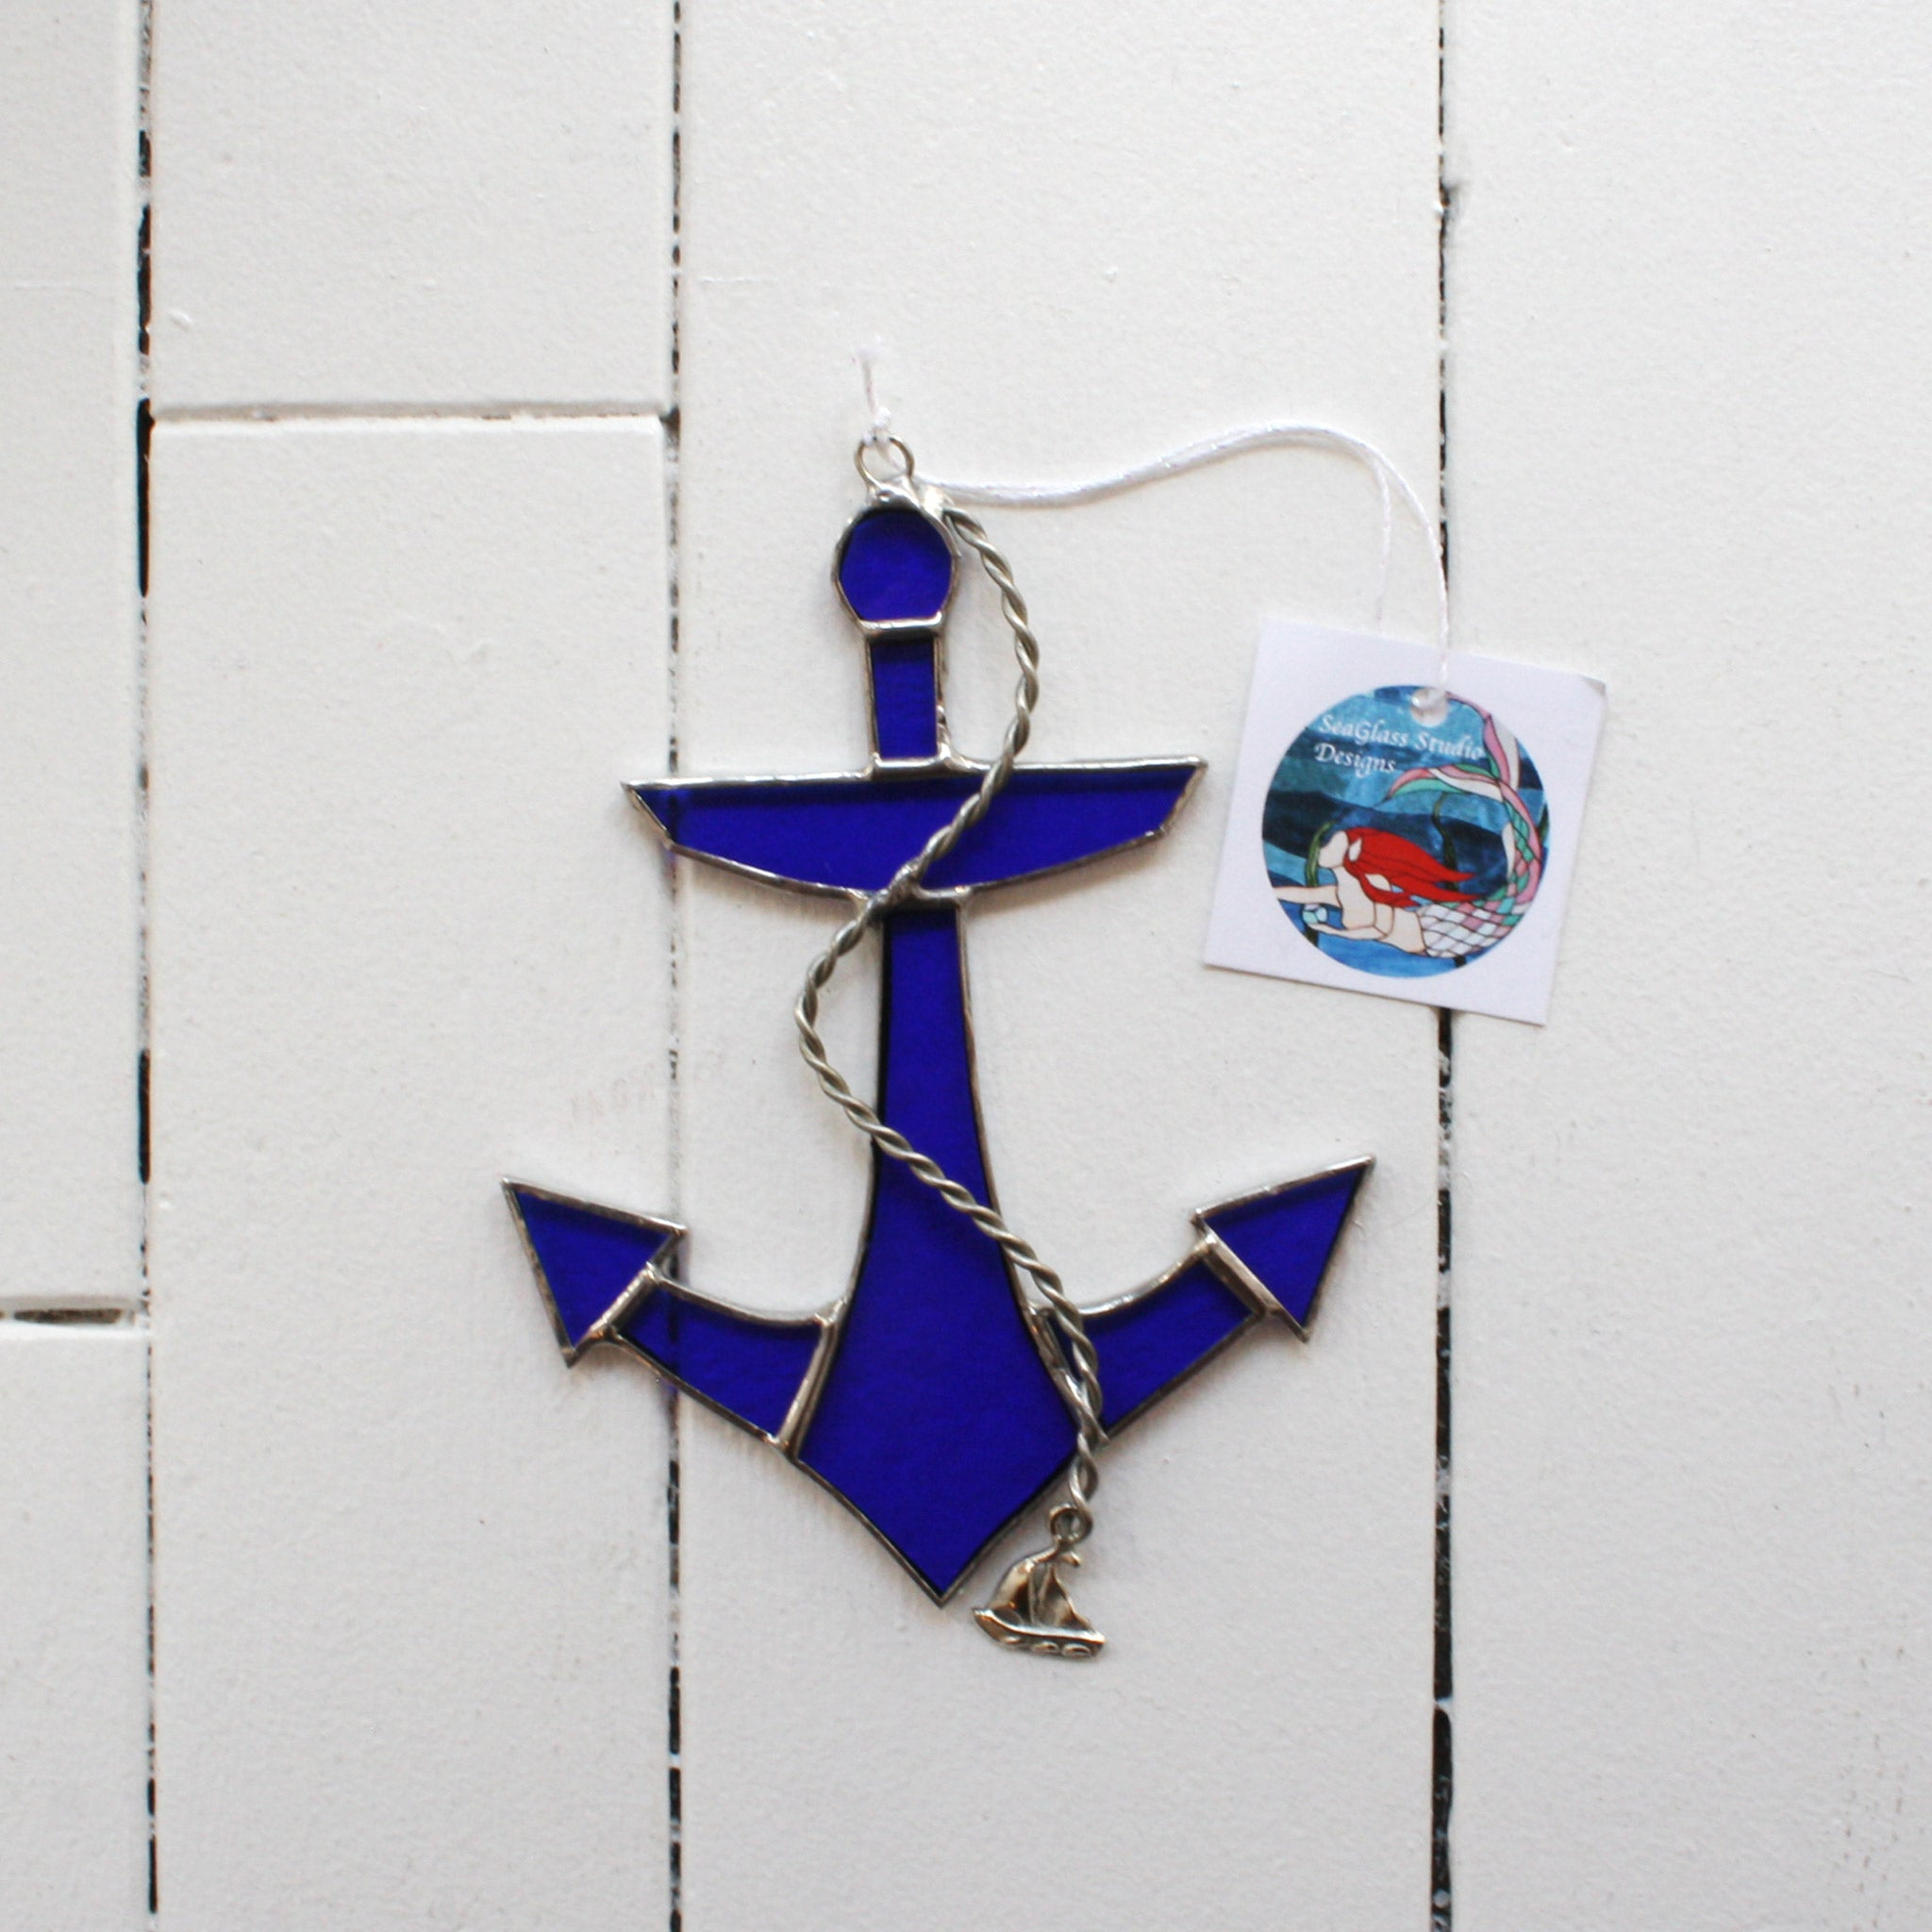 textured clear blue stained glass anchor with attached nautical themed decoration